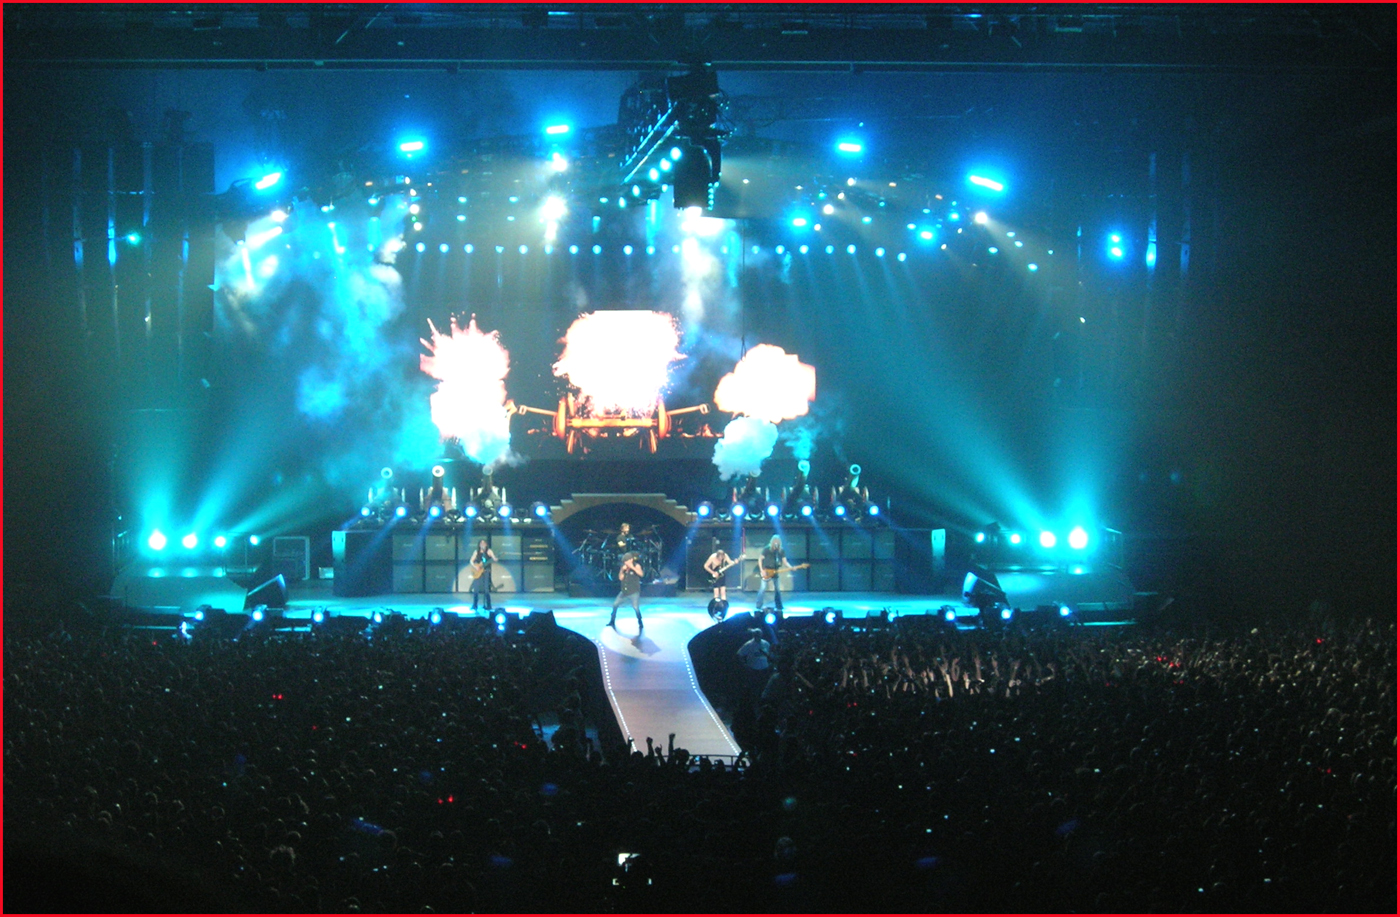 Get Ready to ROCK! Review of gig featuring rock band AC/DC ...